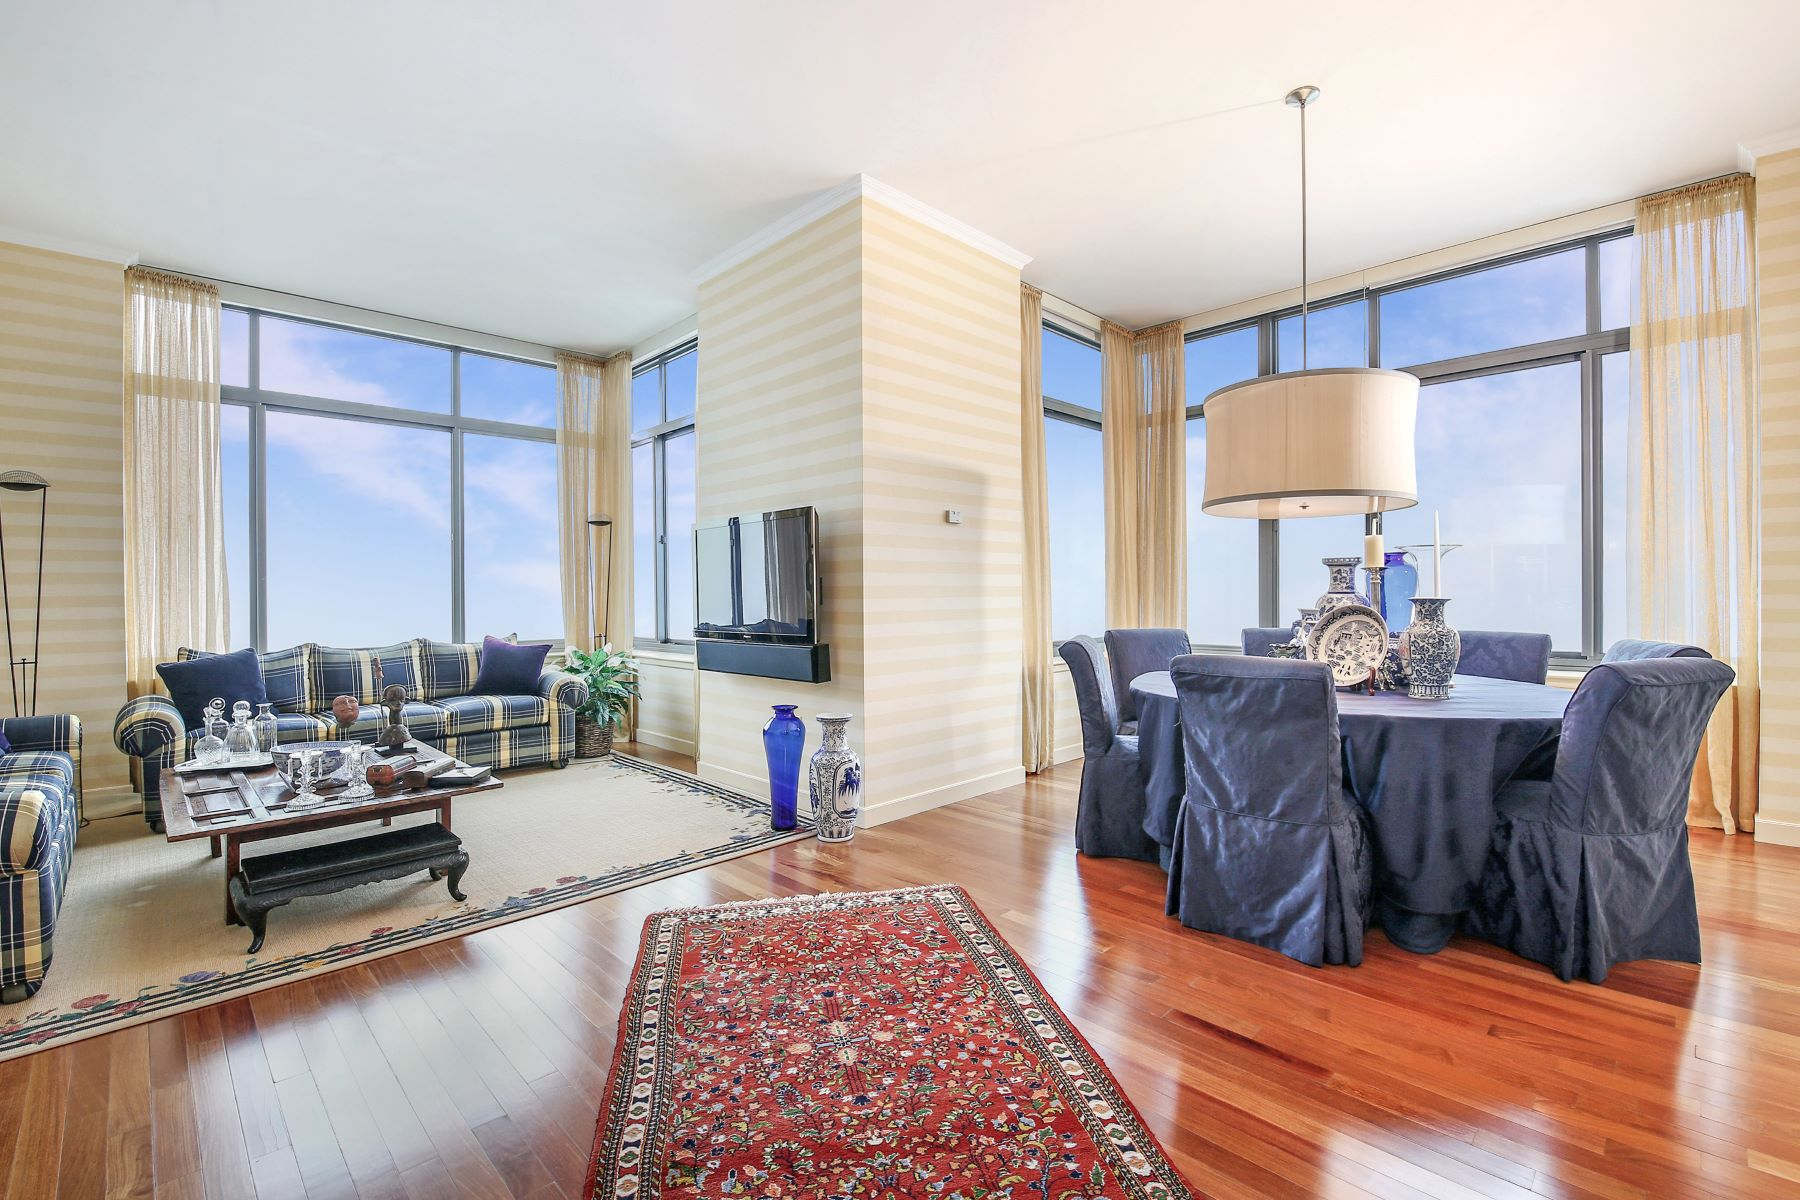 Apartments for Sale at 10 City Place 29A White Plains, New York 10601 United States